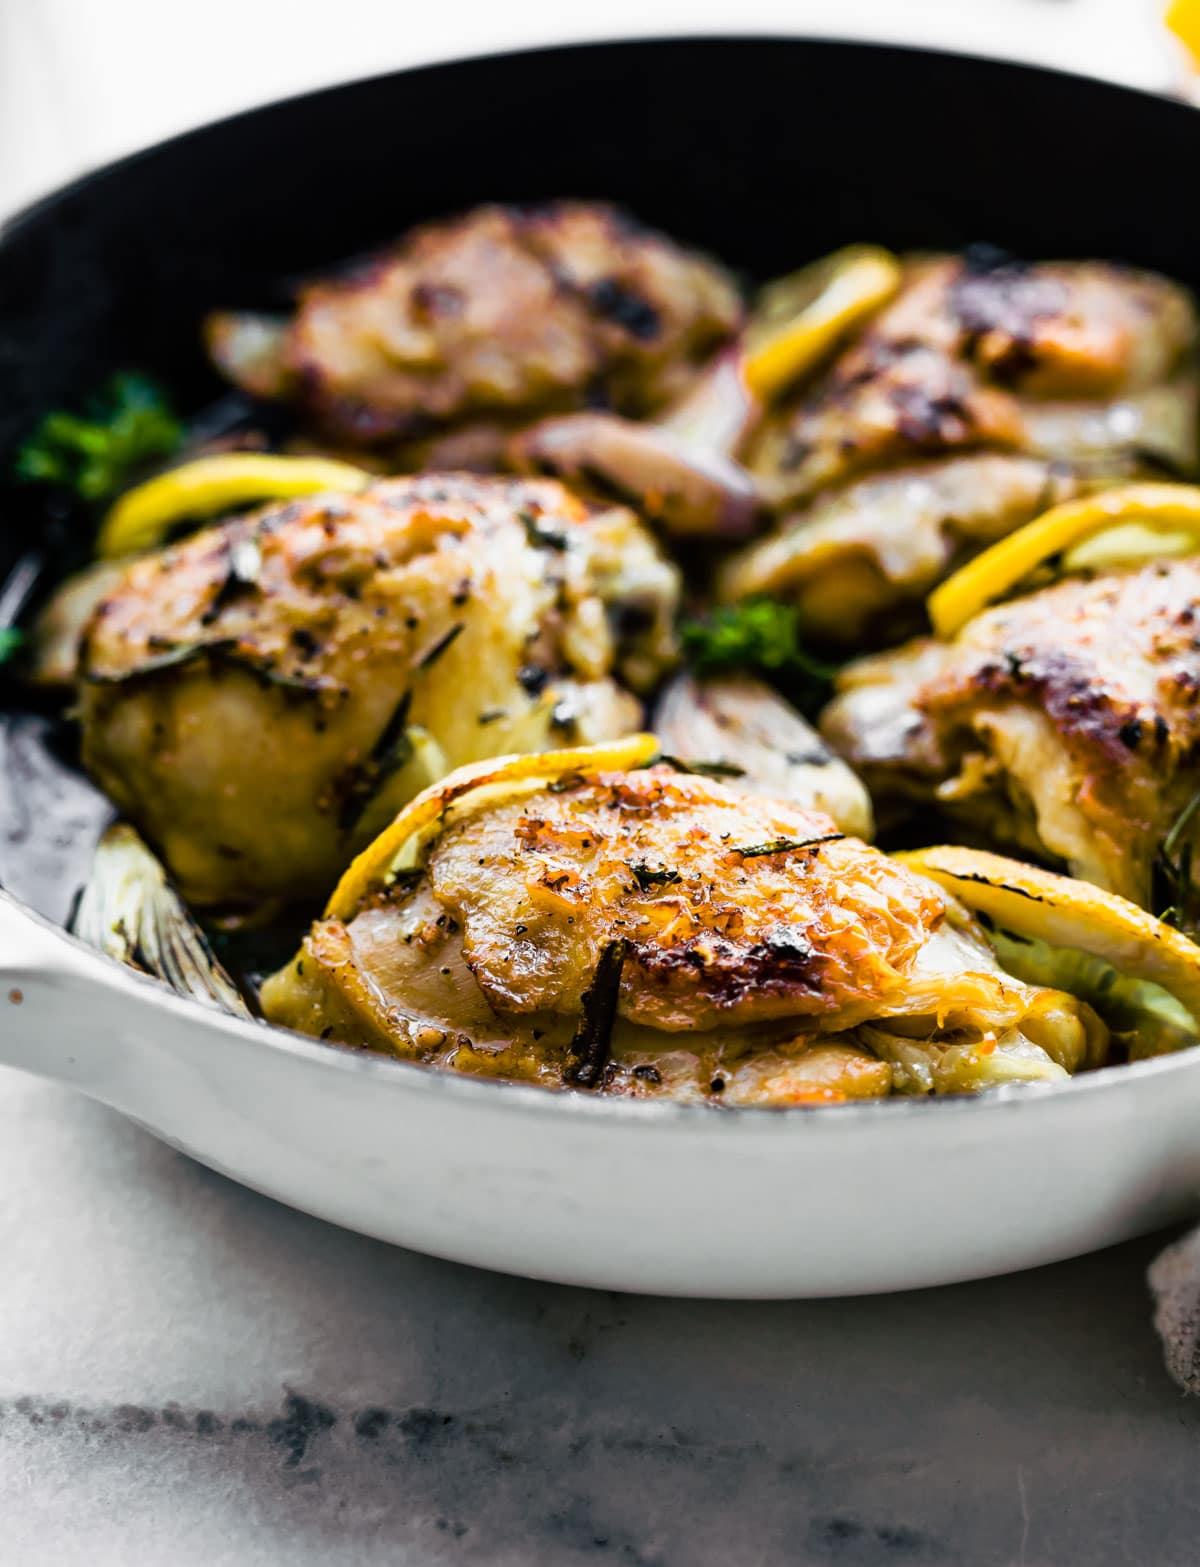 healthy baked chicken recipe cooking in a skillet